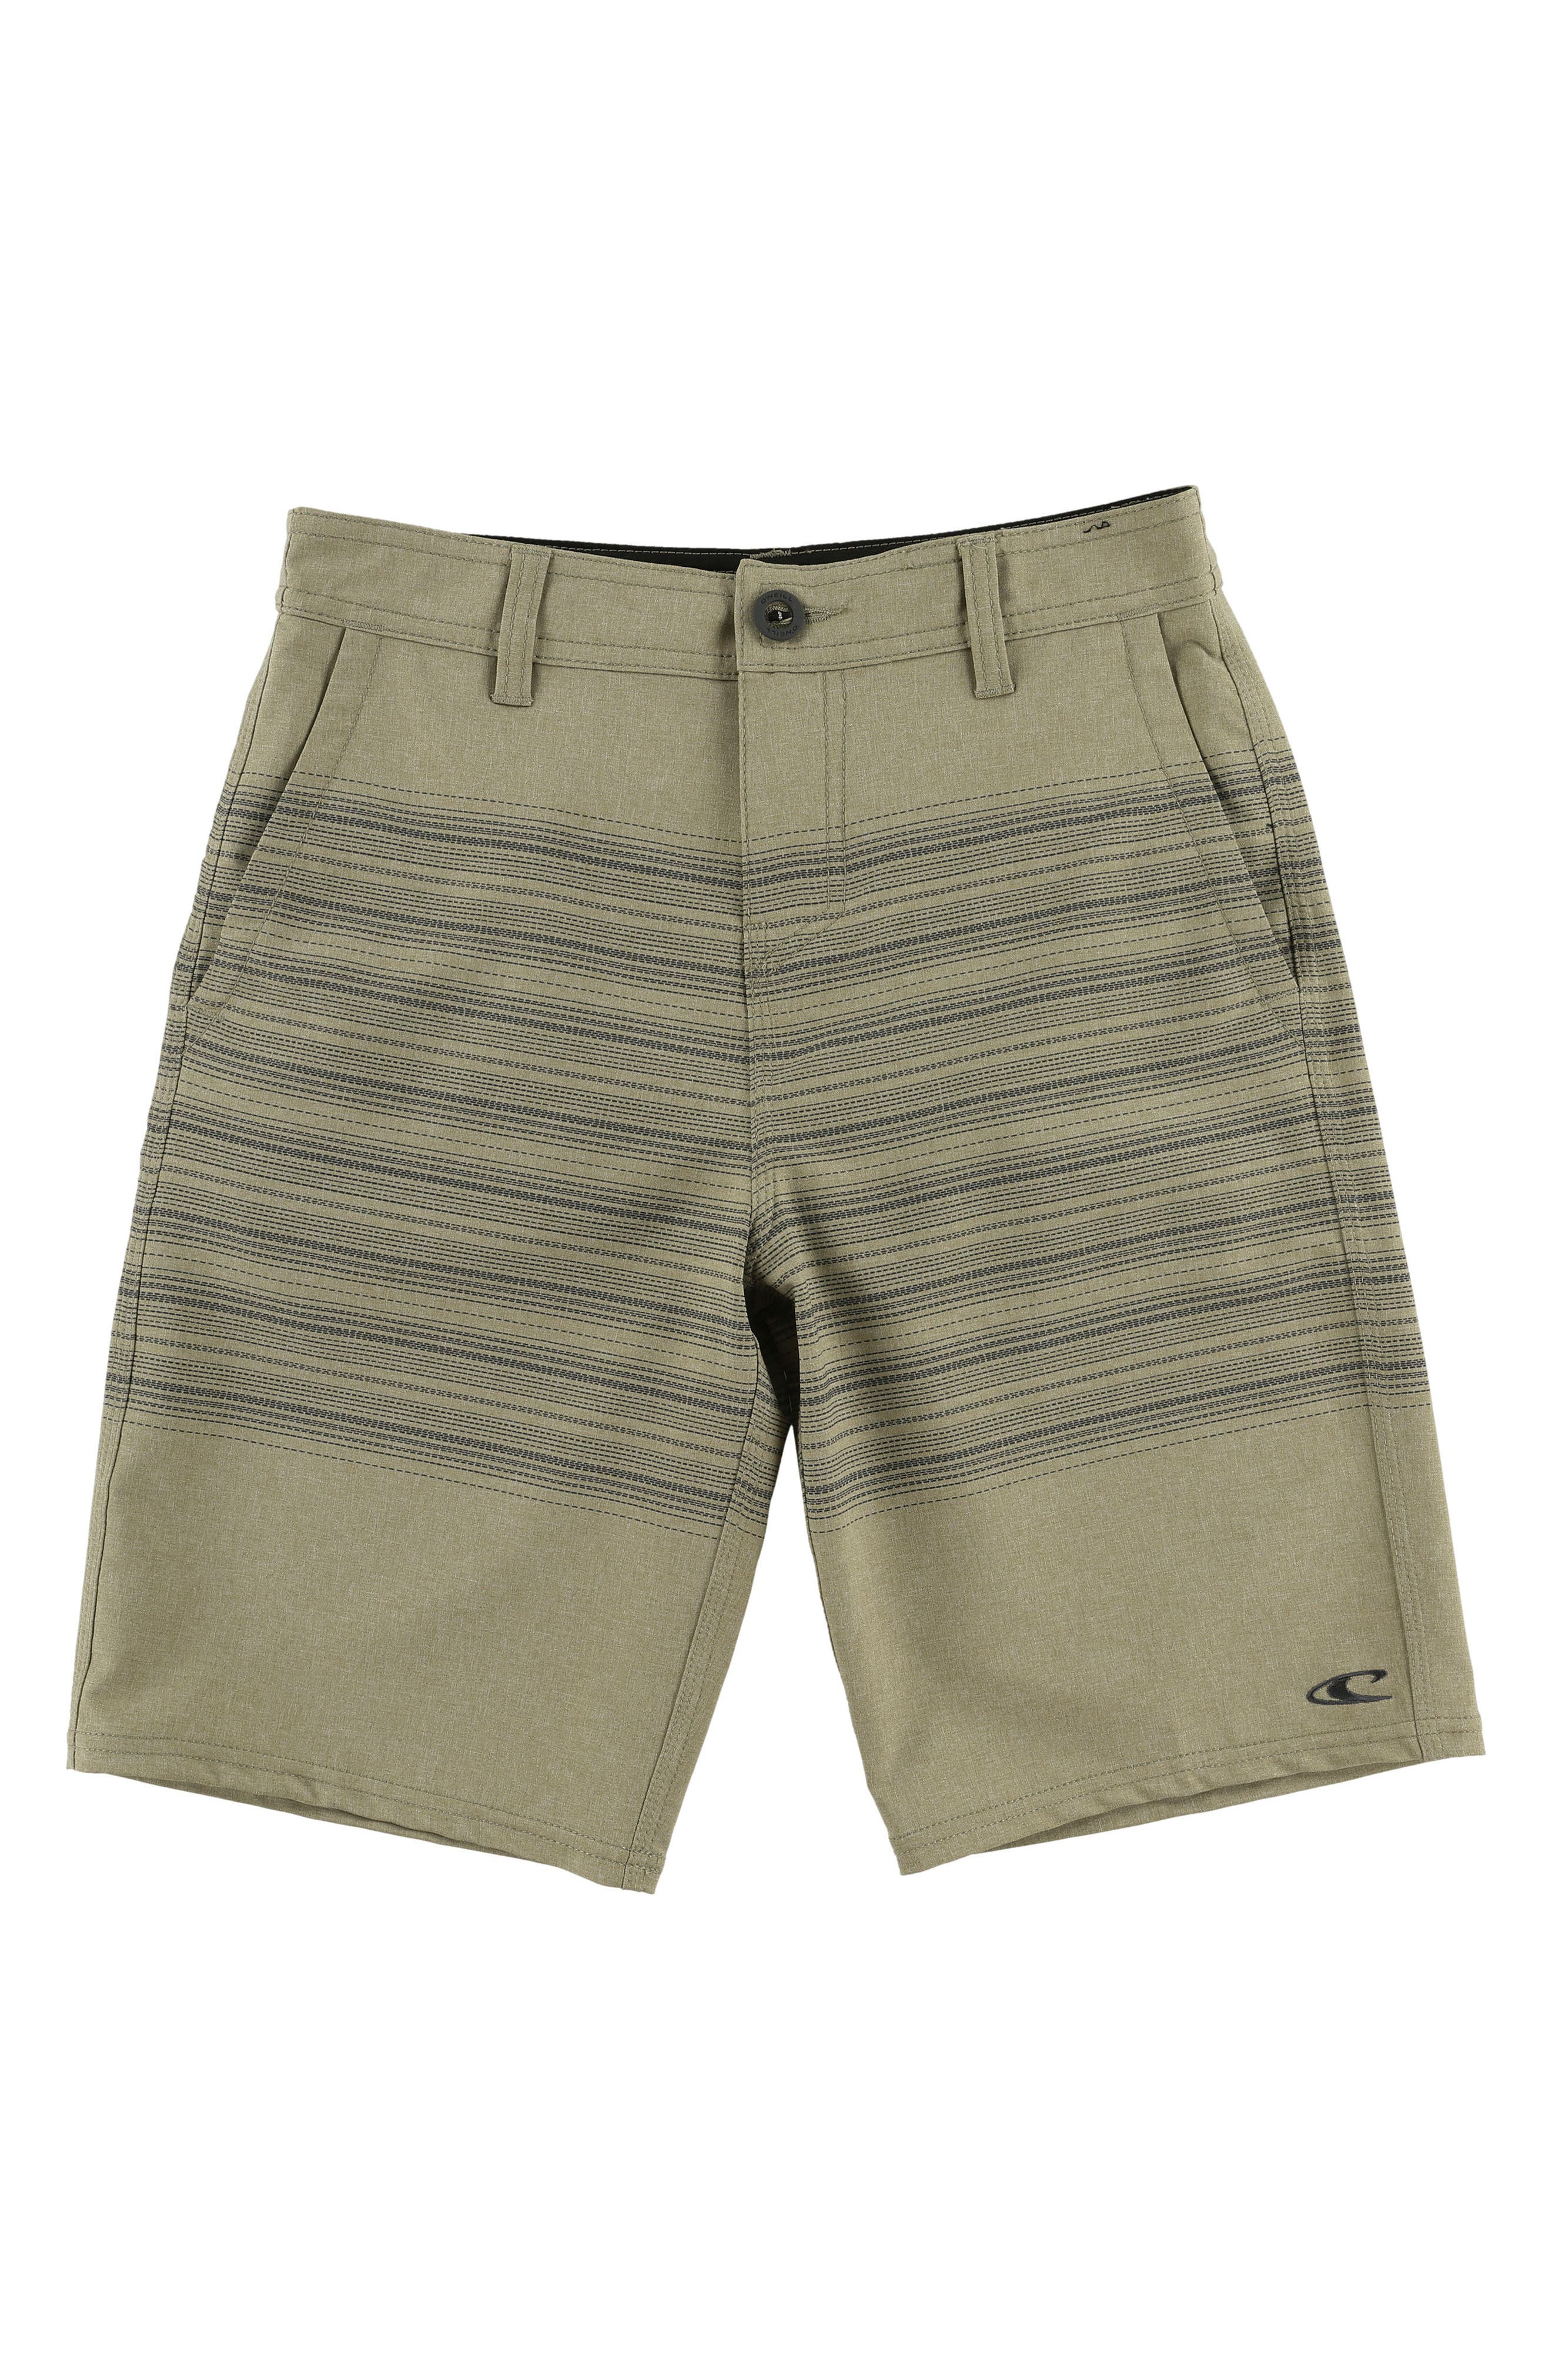 Loaded Schematic Hybrid Board Shorts,                             Main thumbnail 1, color,                             251